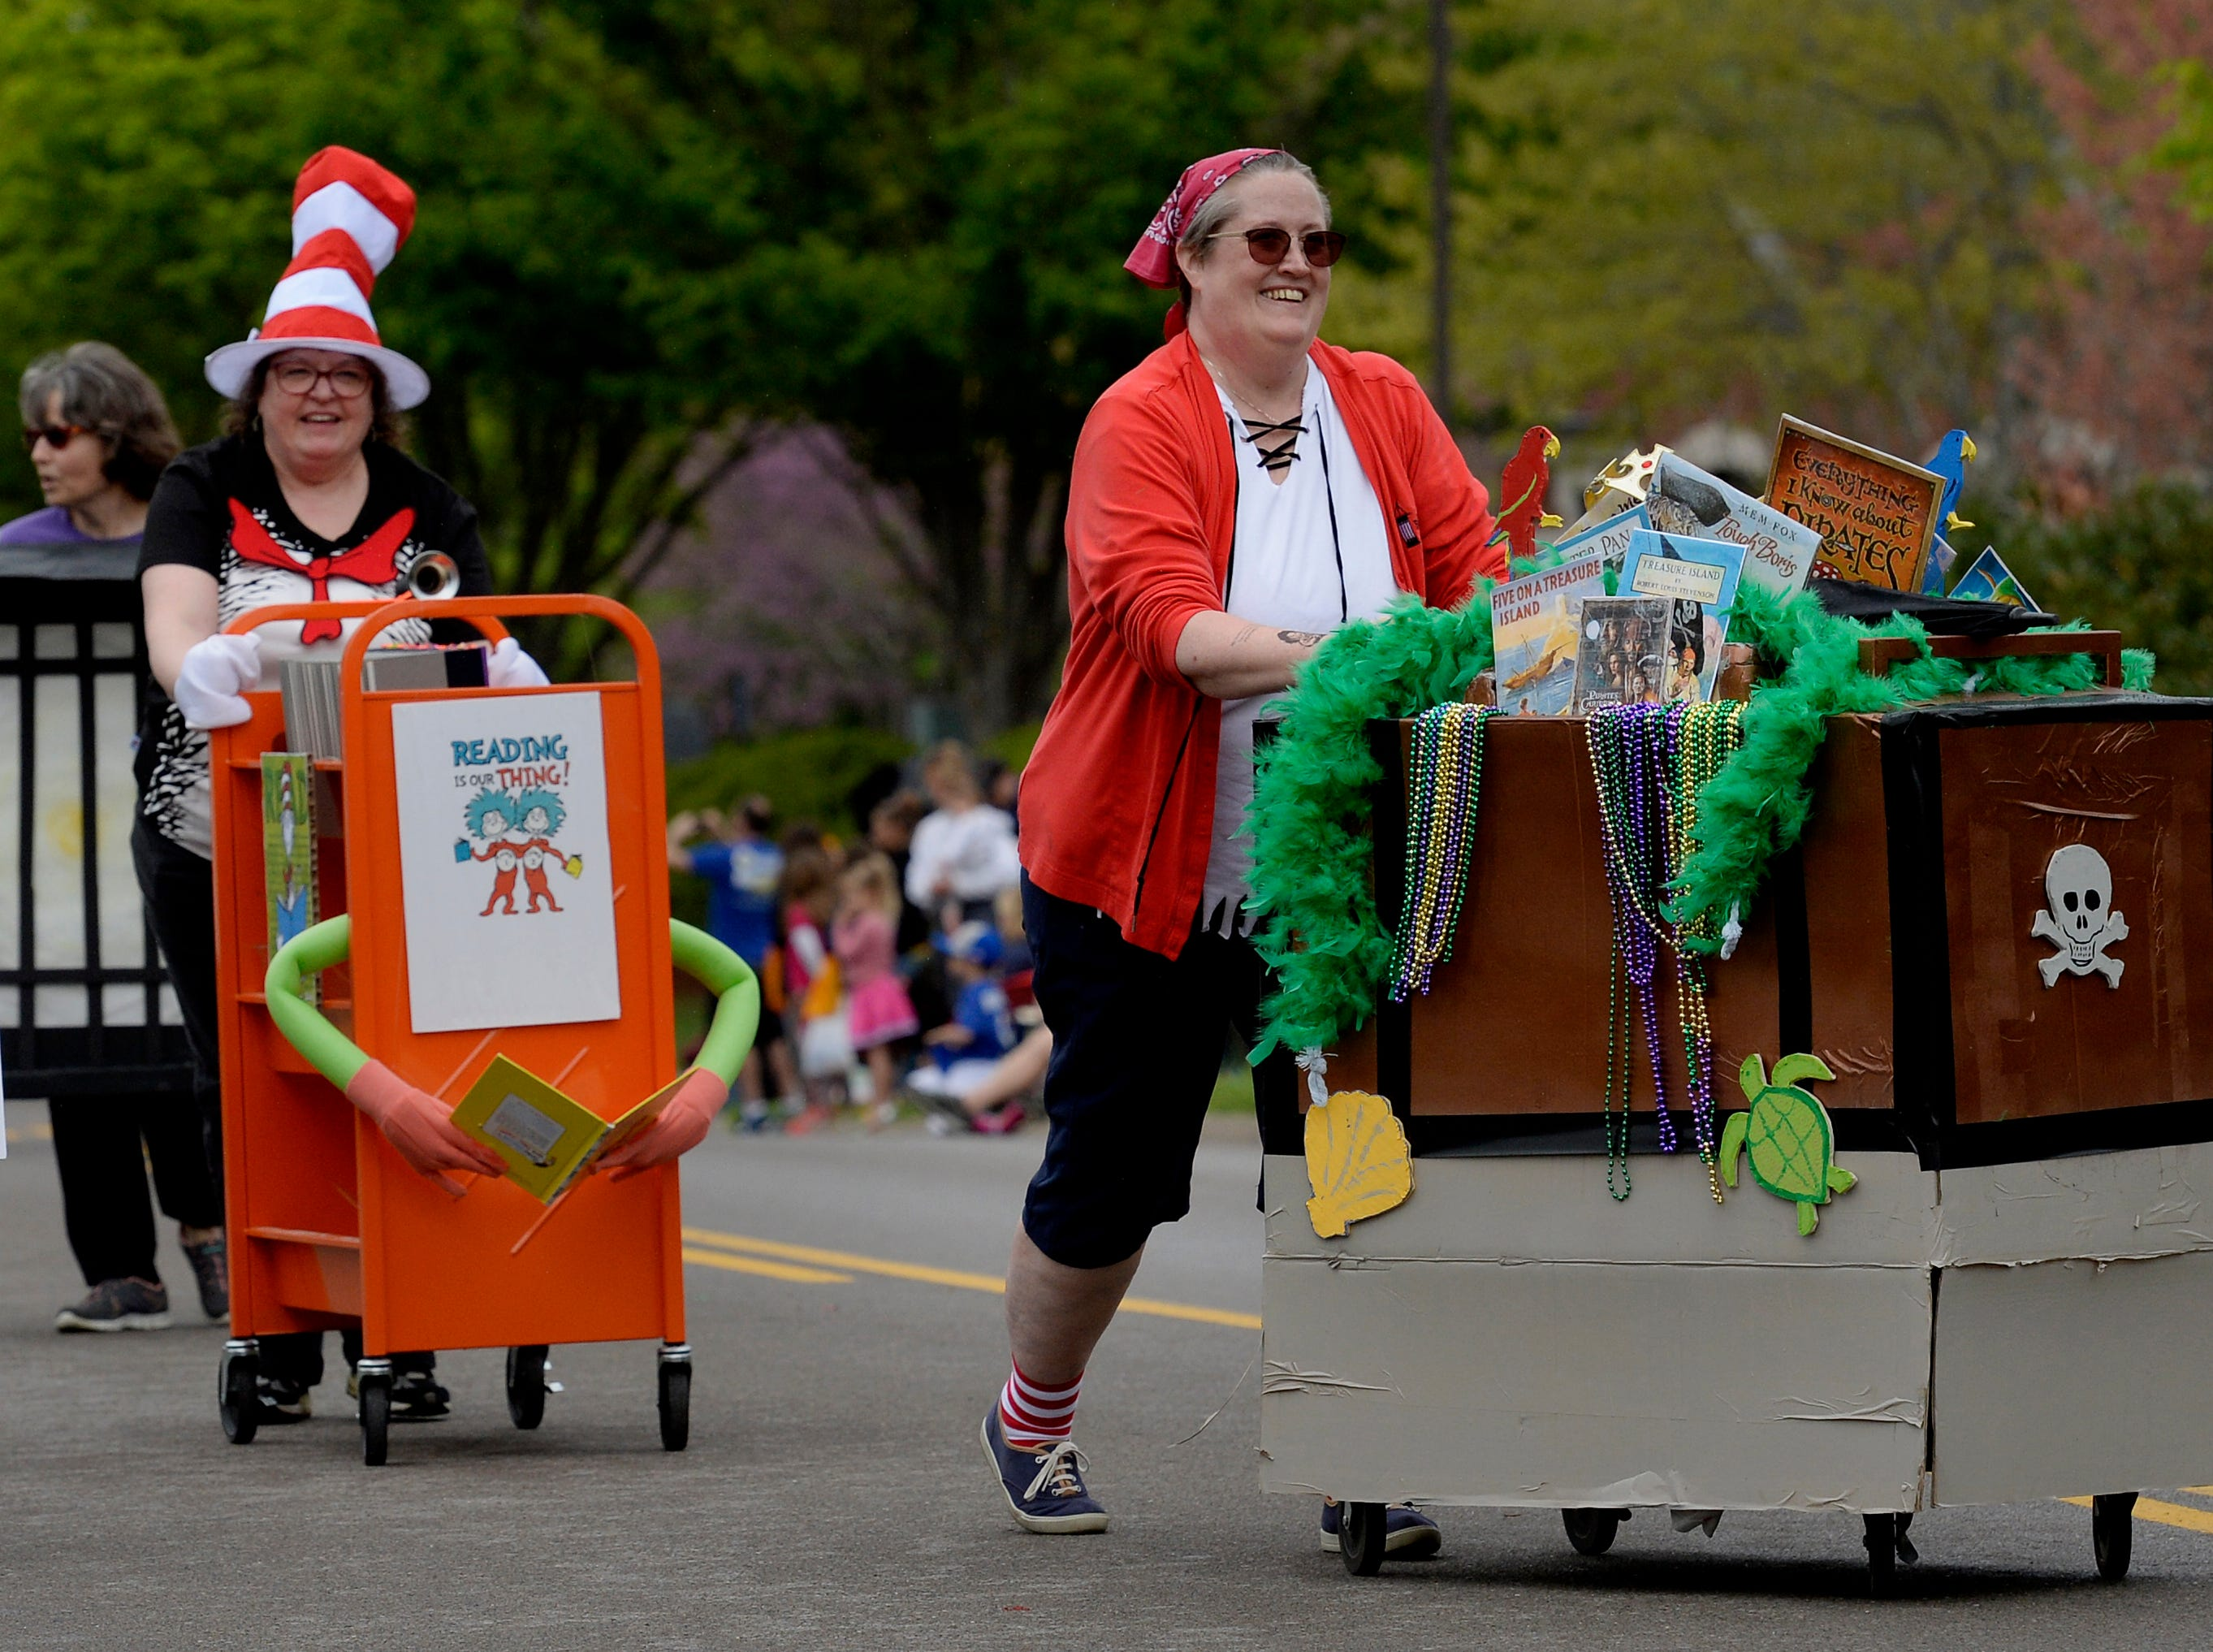 """Brentwood librarians participate in Brentwood's """"A Golden Gallop"""" parade celebrating its 50th year as a community on Saturday, April 13, 2019, in Brentwood, Tenn."""